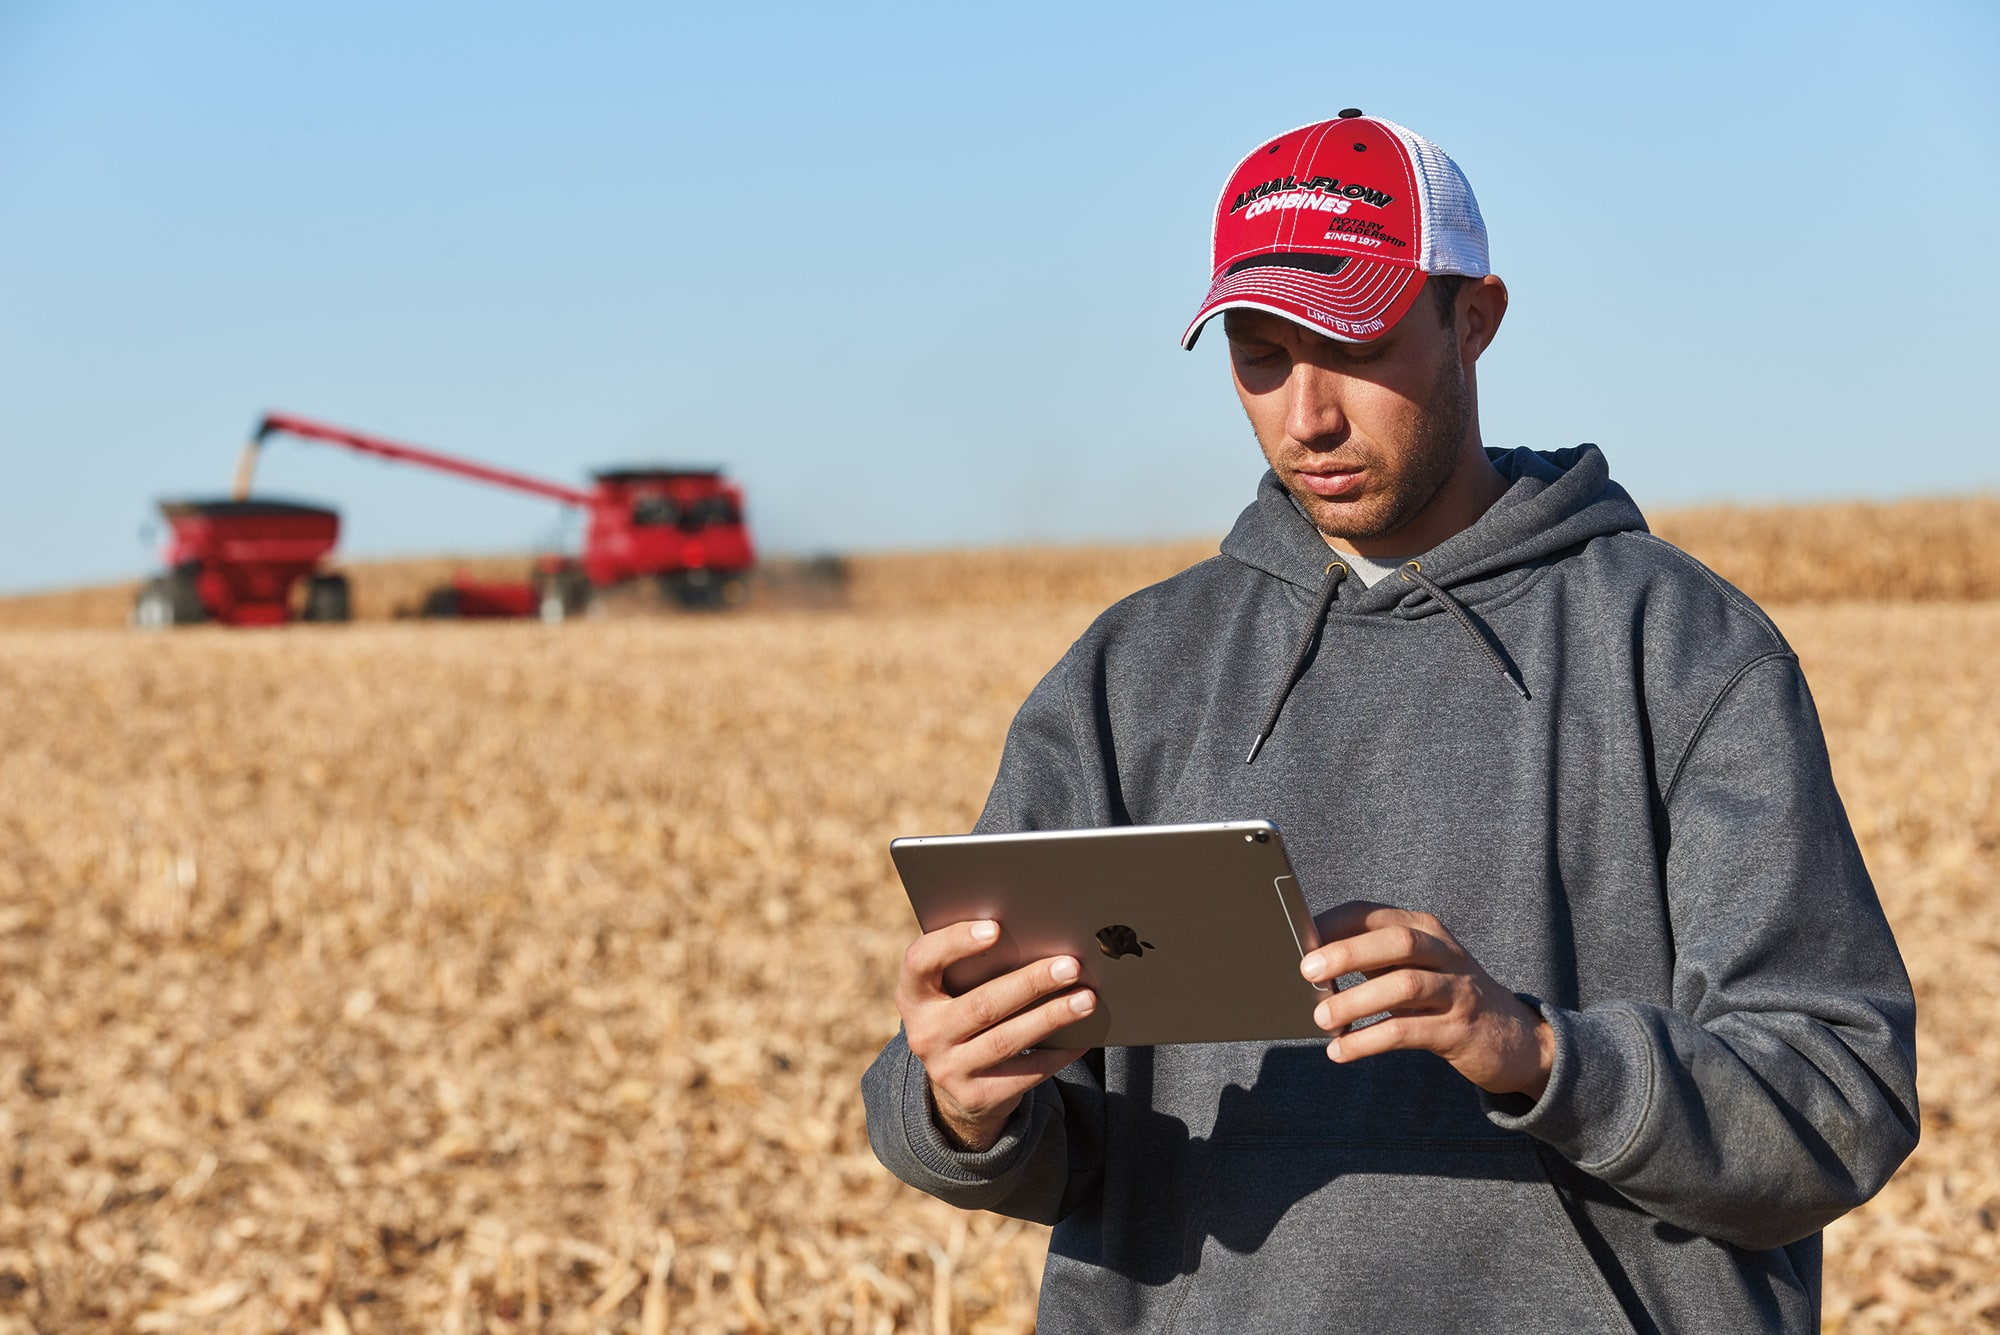 Agronomic Data Benefits Daily Decision-making